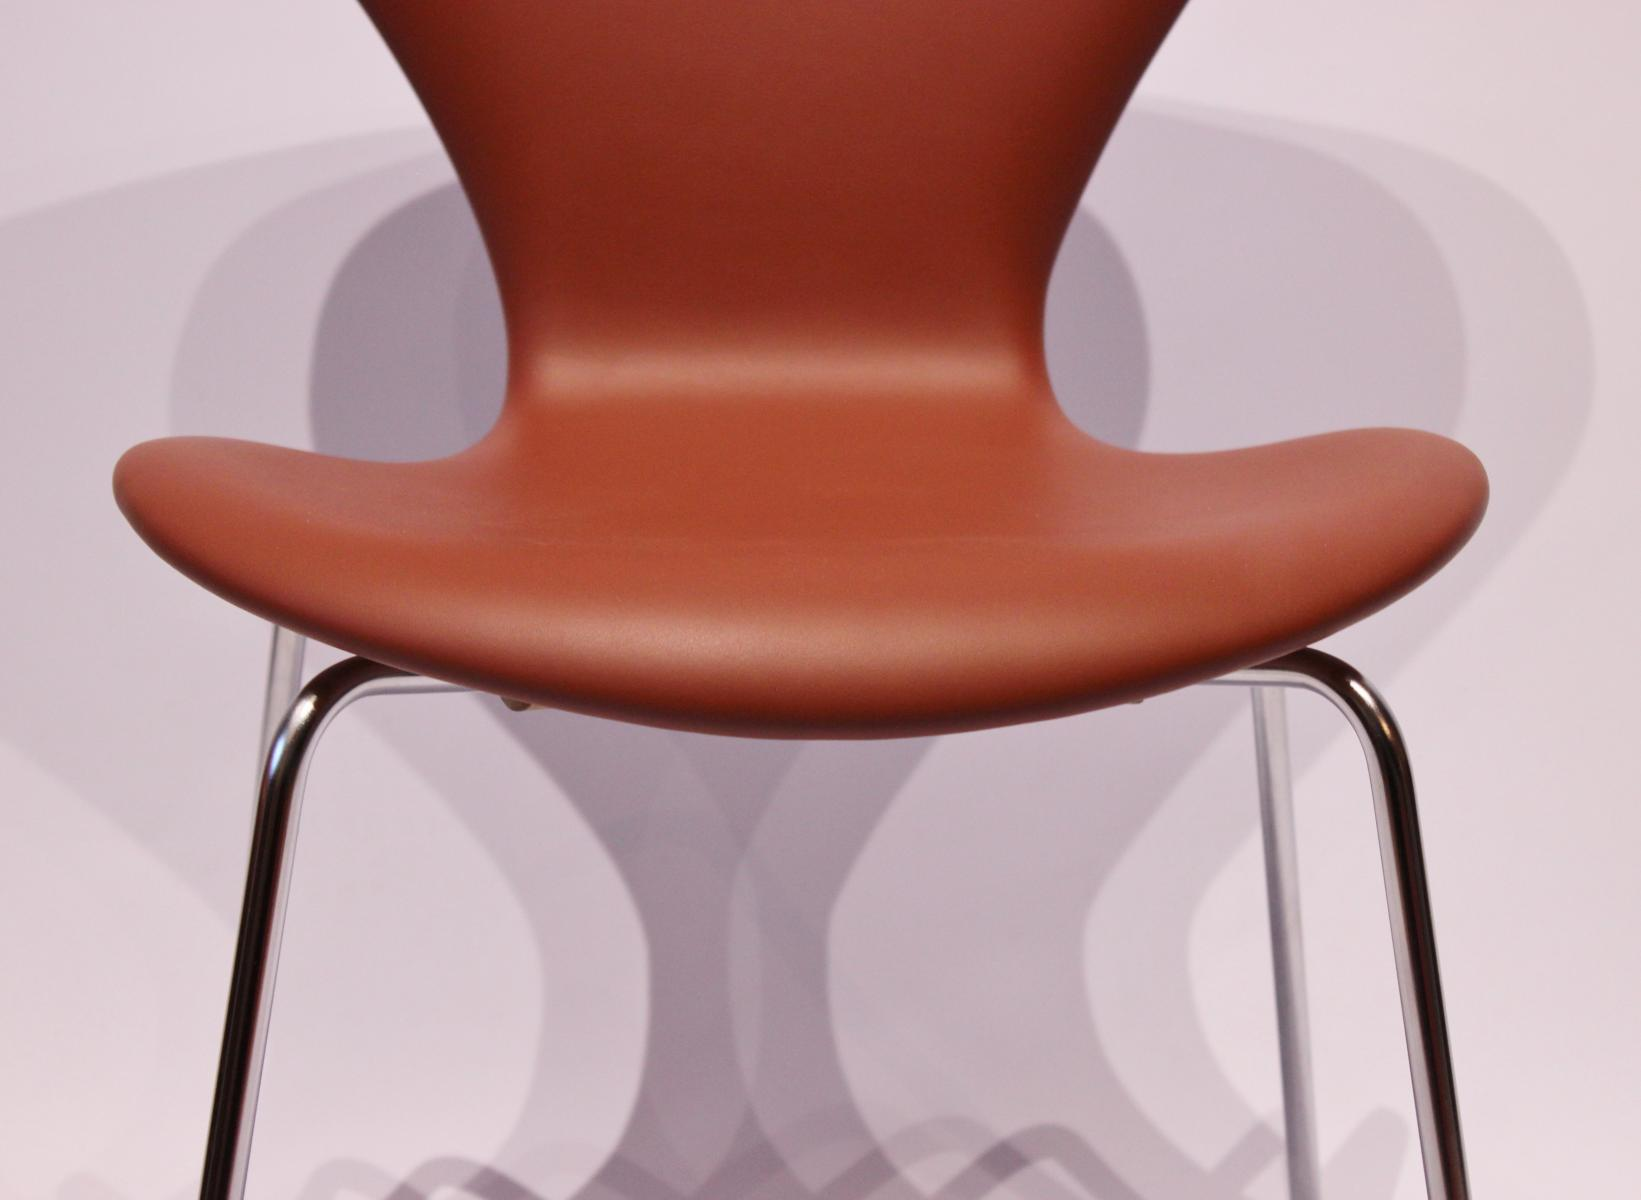 Model 3107 Cognac-Colored Savanne Leather Chairs by Arne Jacobsen ...